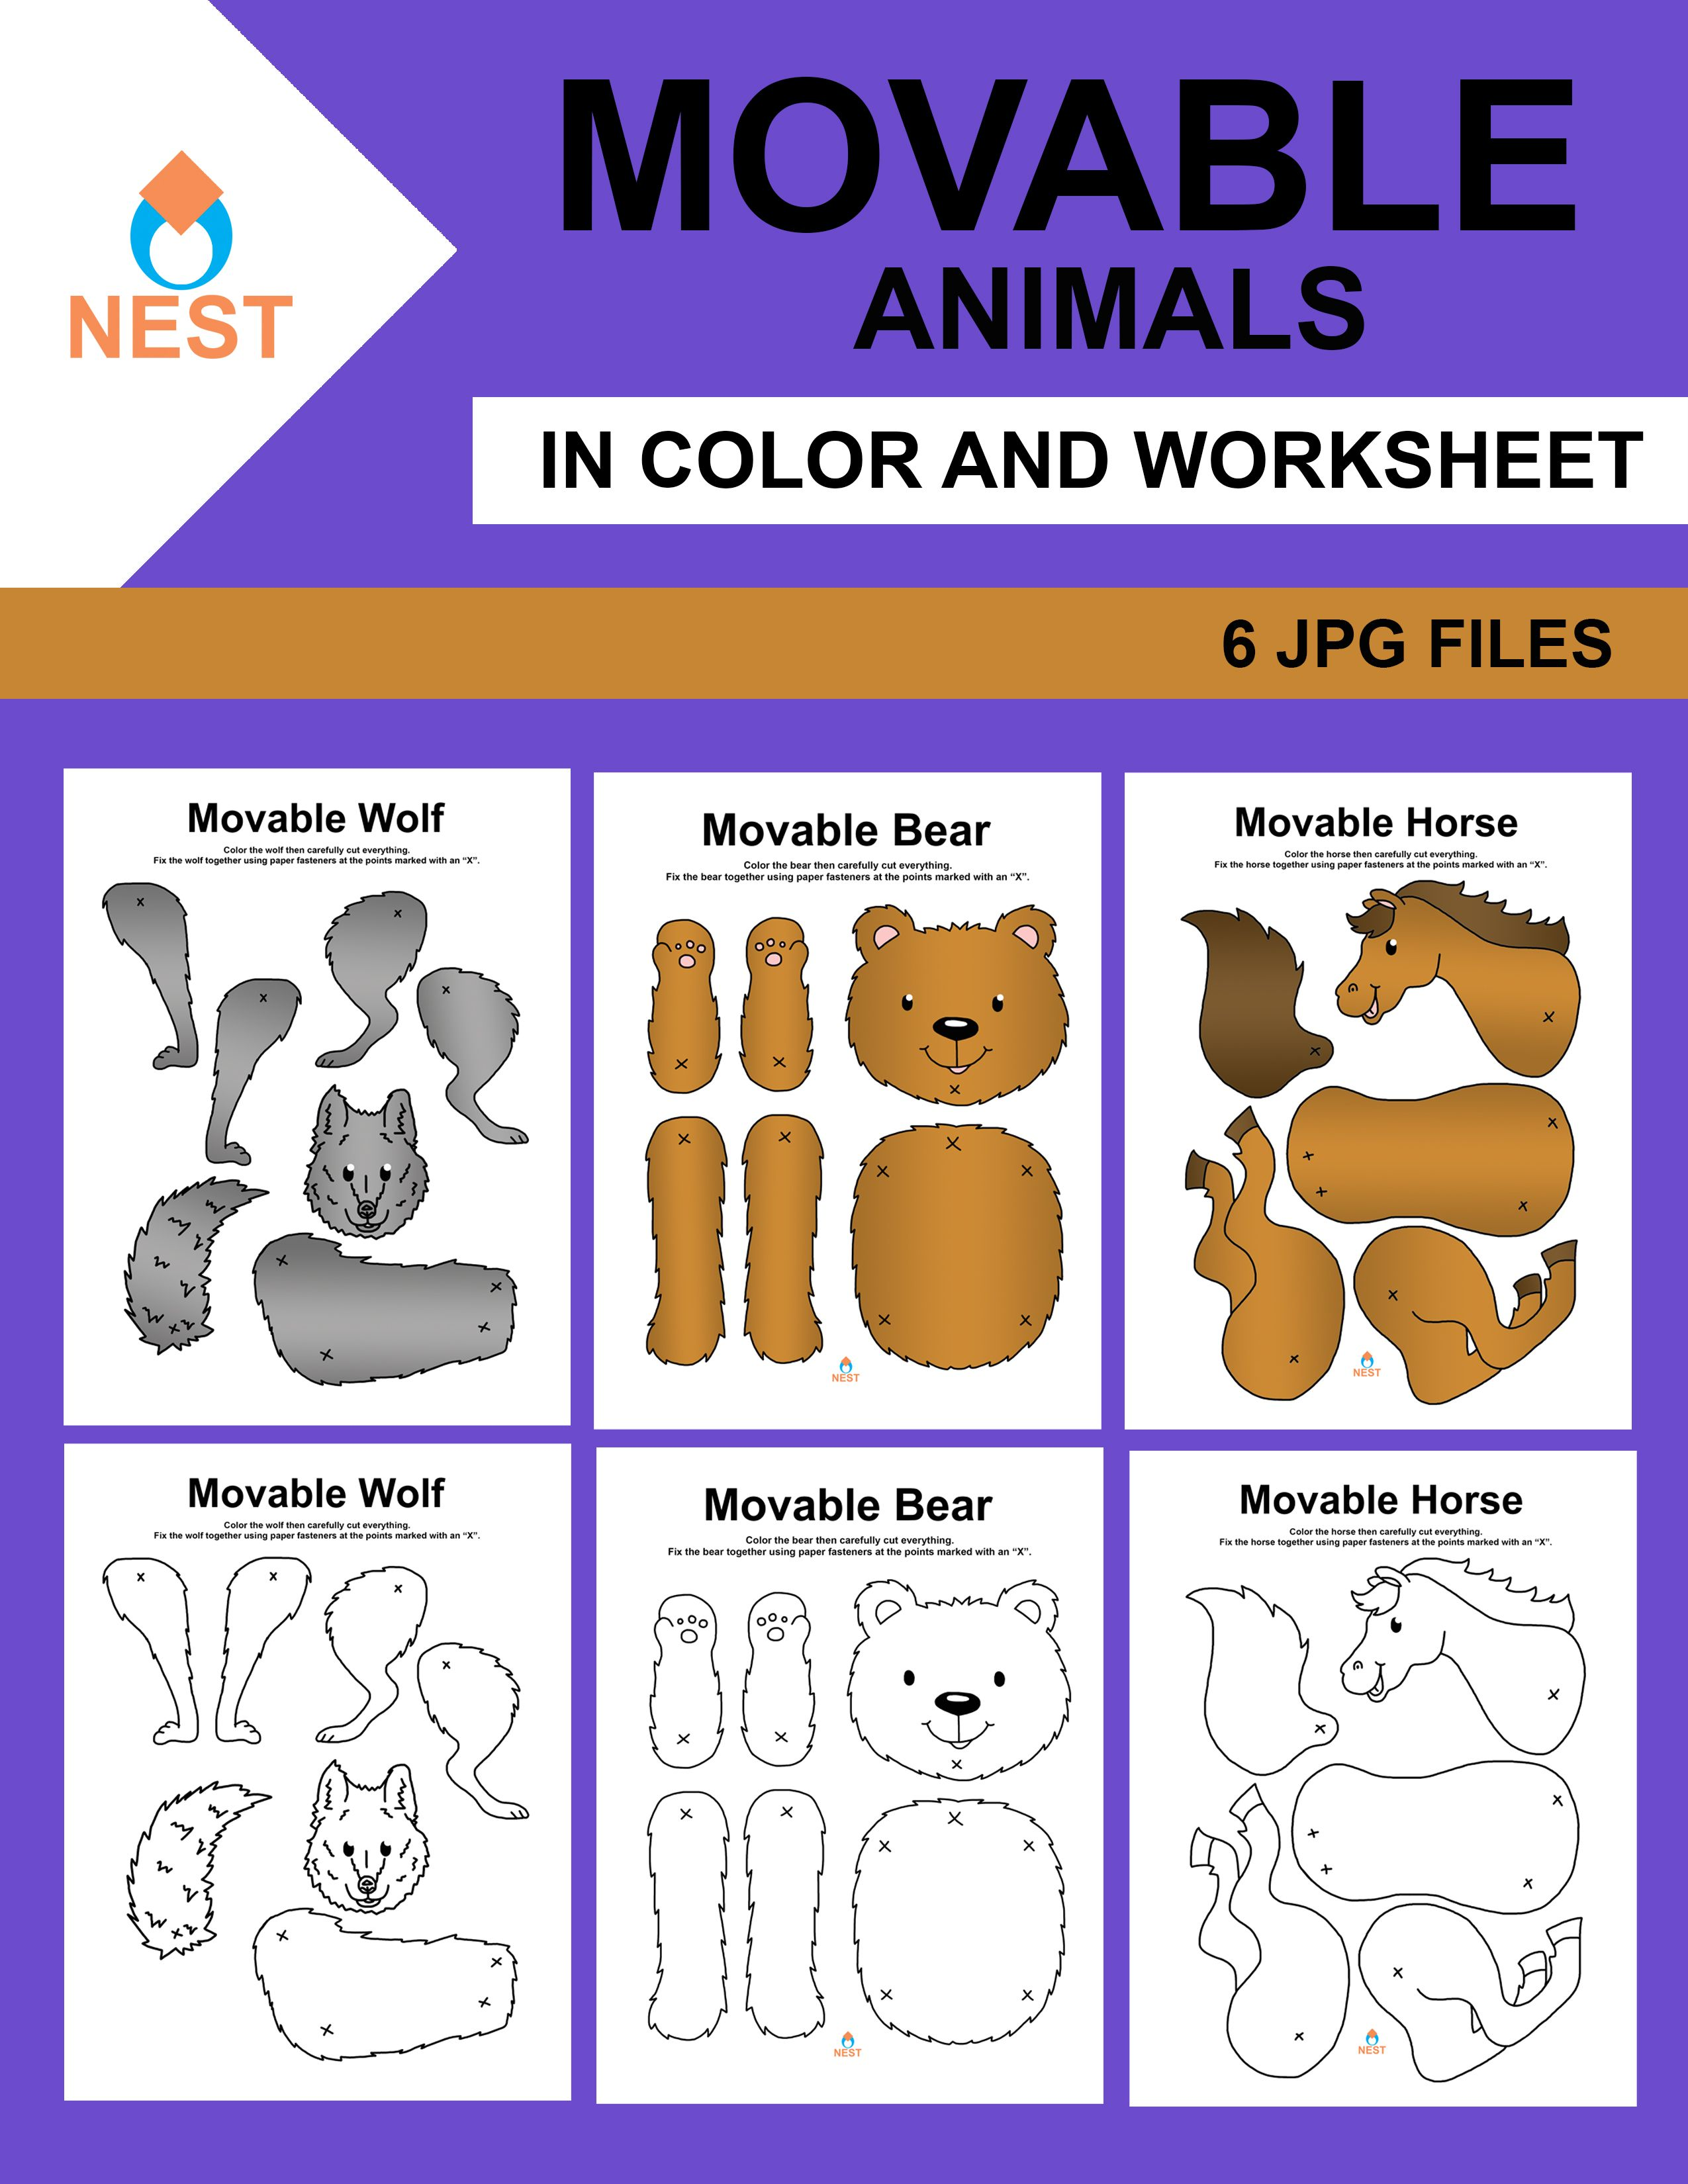 Movable Animals Worksheets